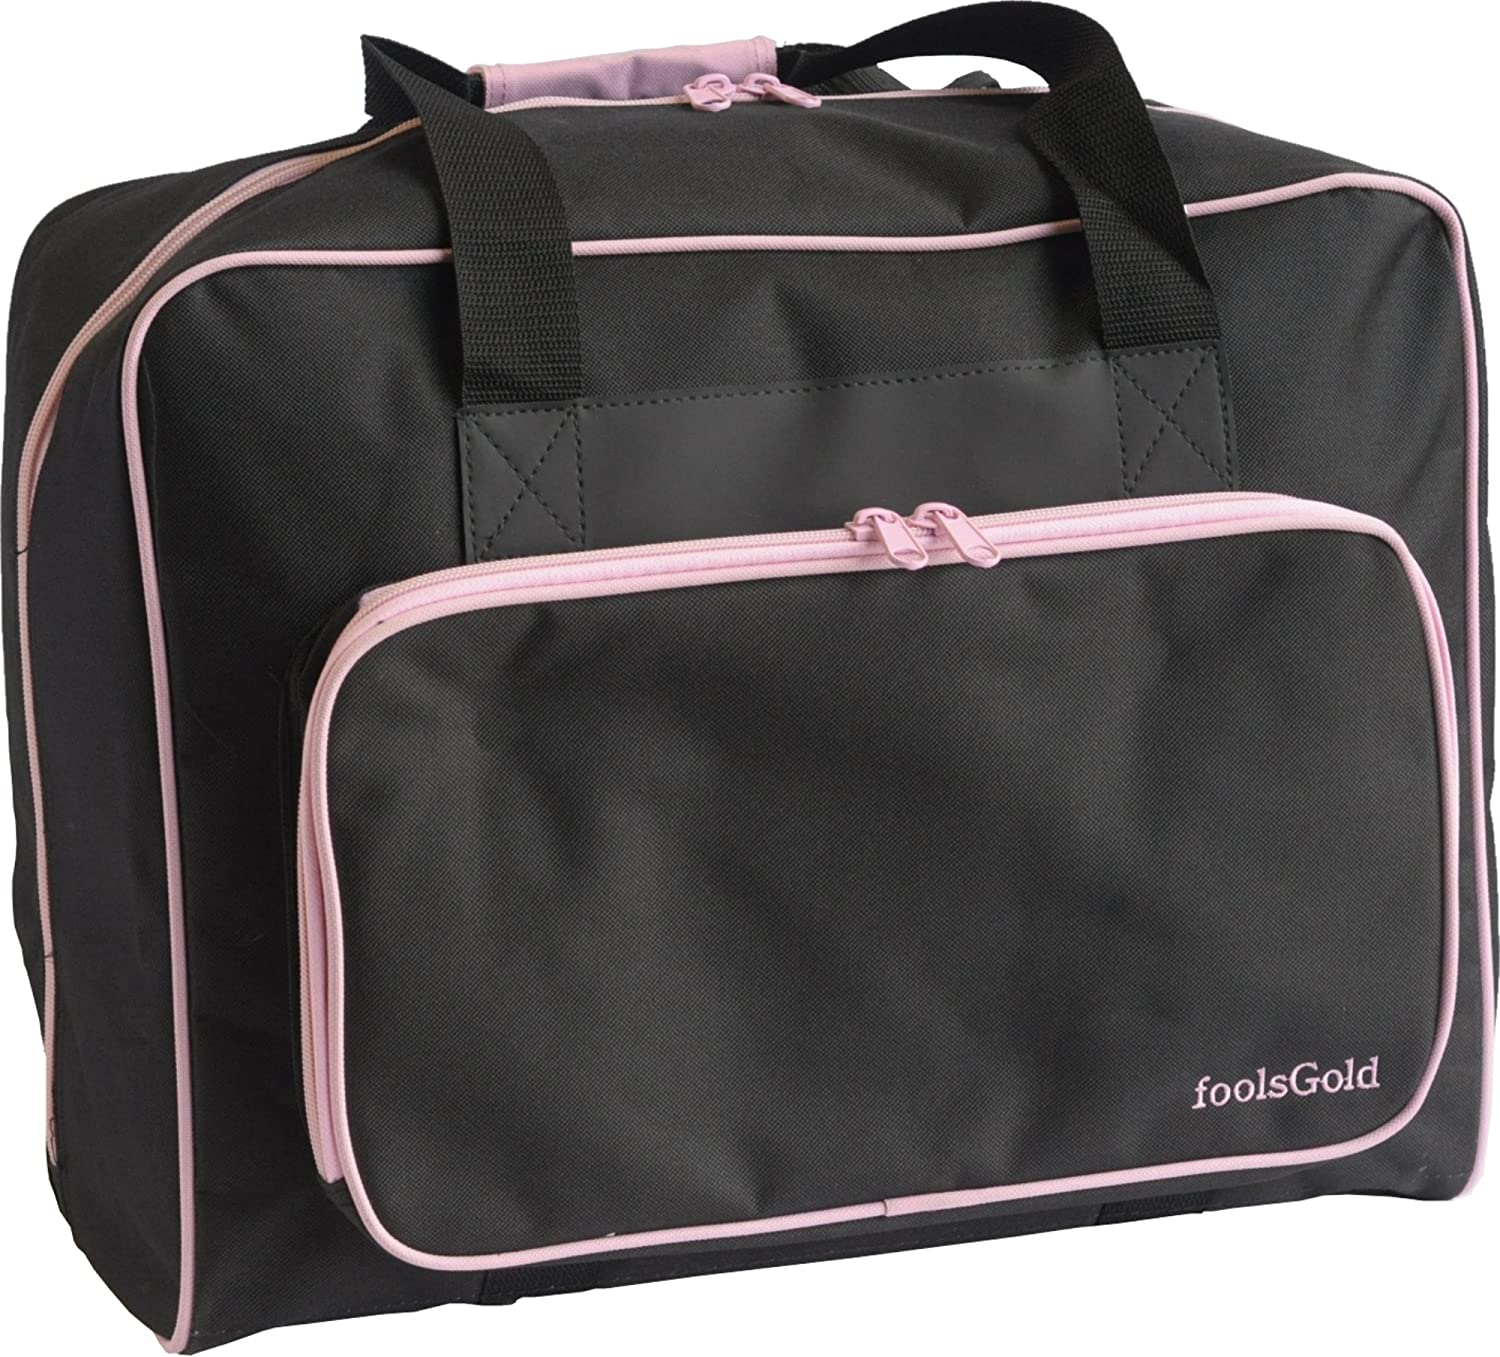 foolsGold Pro Thick Padded Sewing Machine Bag Carry Case (Black/Purple)